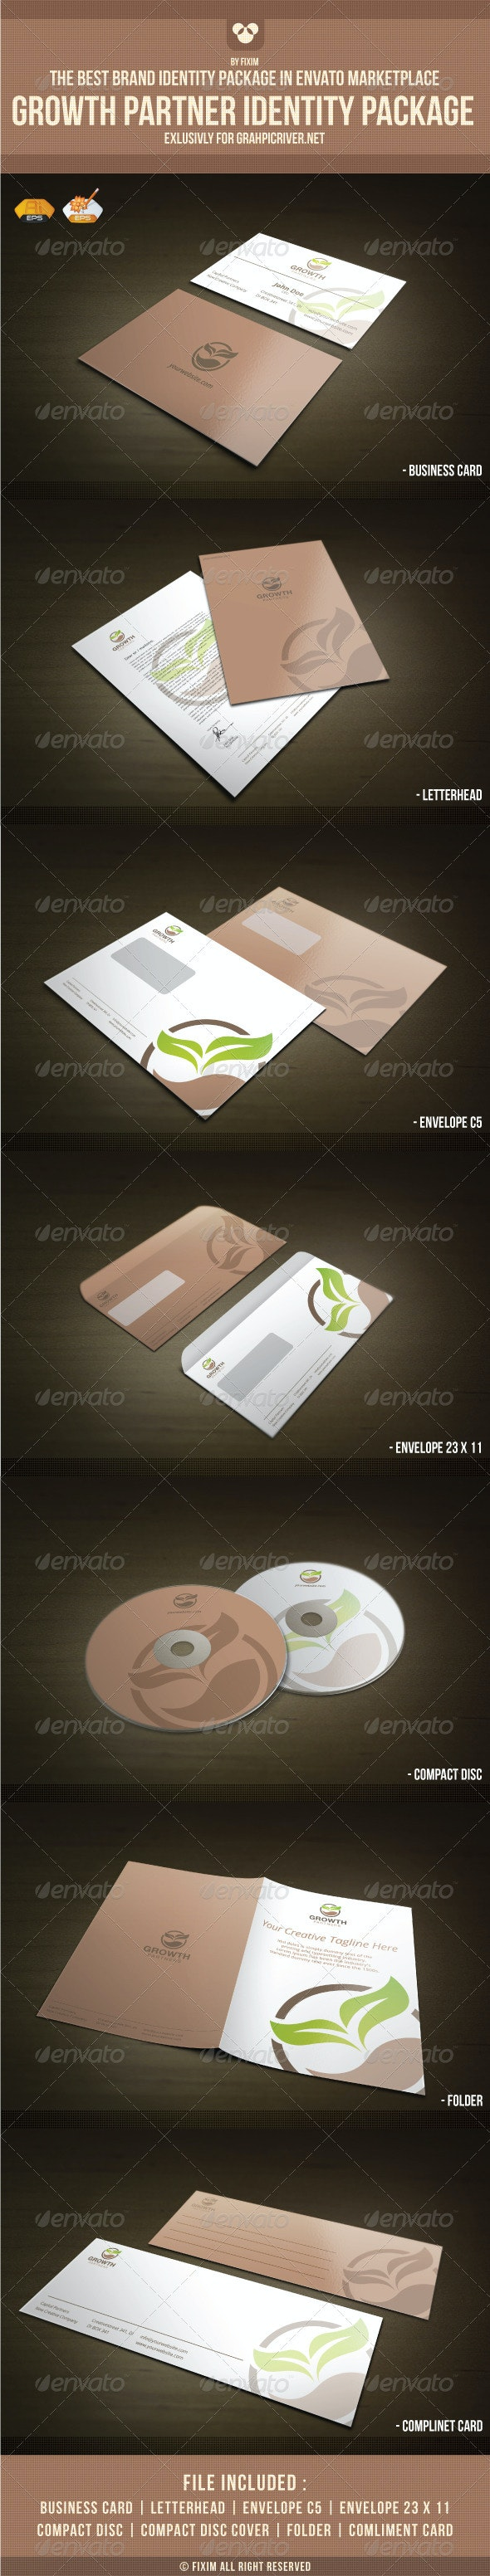 Growth Partners Identity Package - Stationery Print Templates